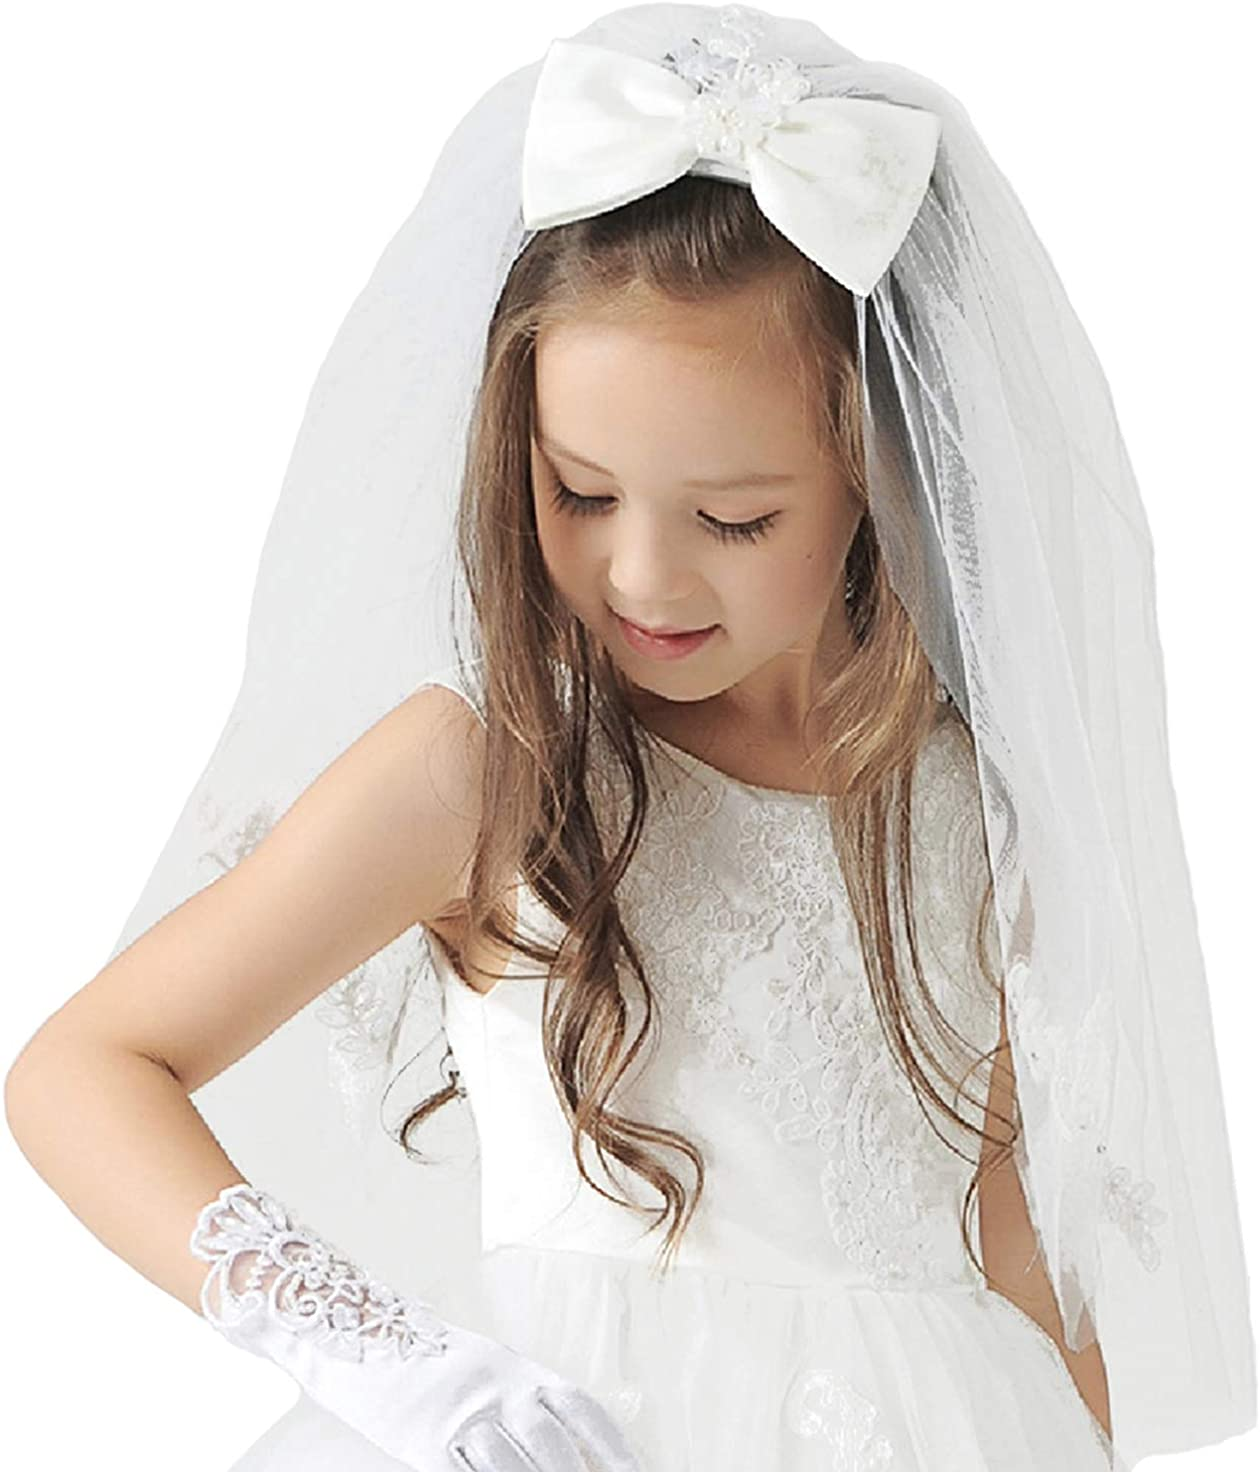 Elesa Miracle First Communion Flower Girl Bow Embroidered Wedding Veil, Ivory, In Gift Box